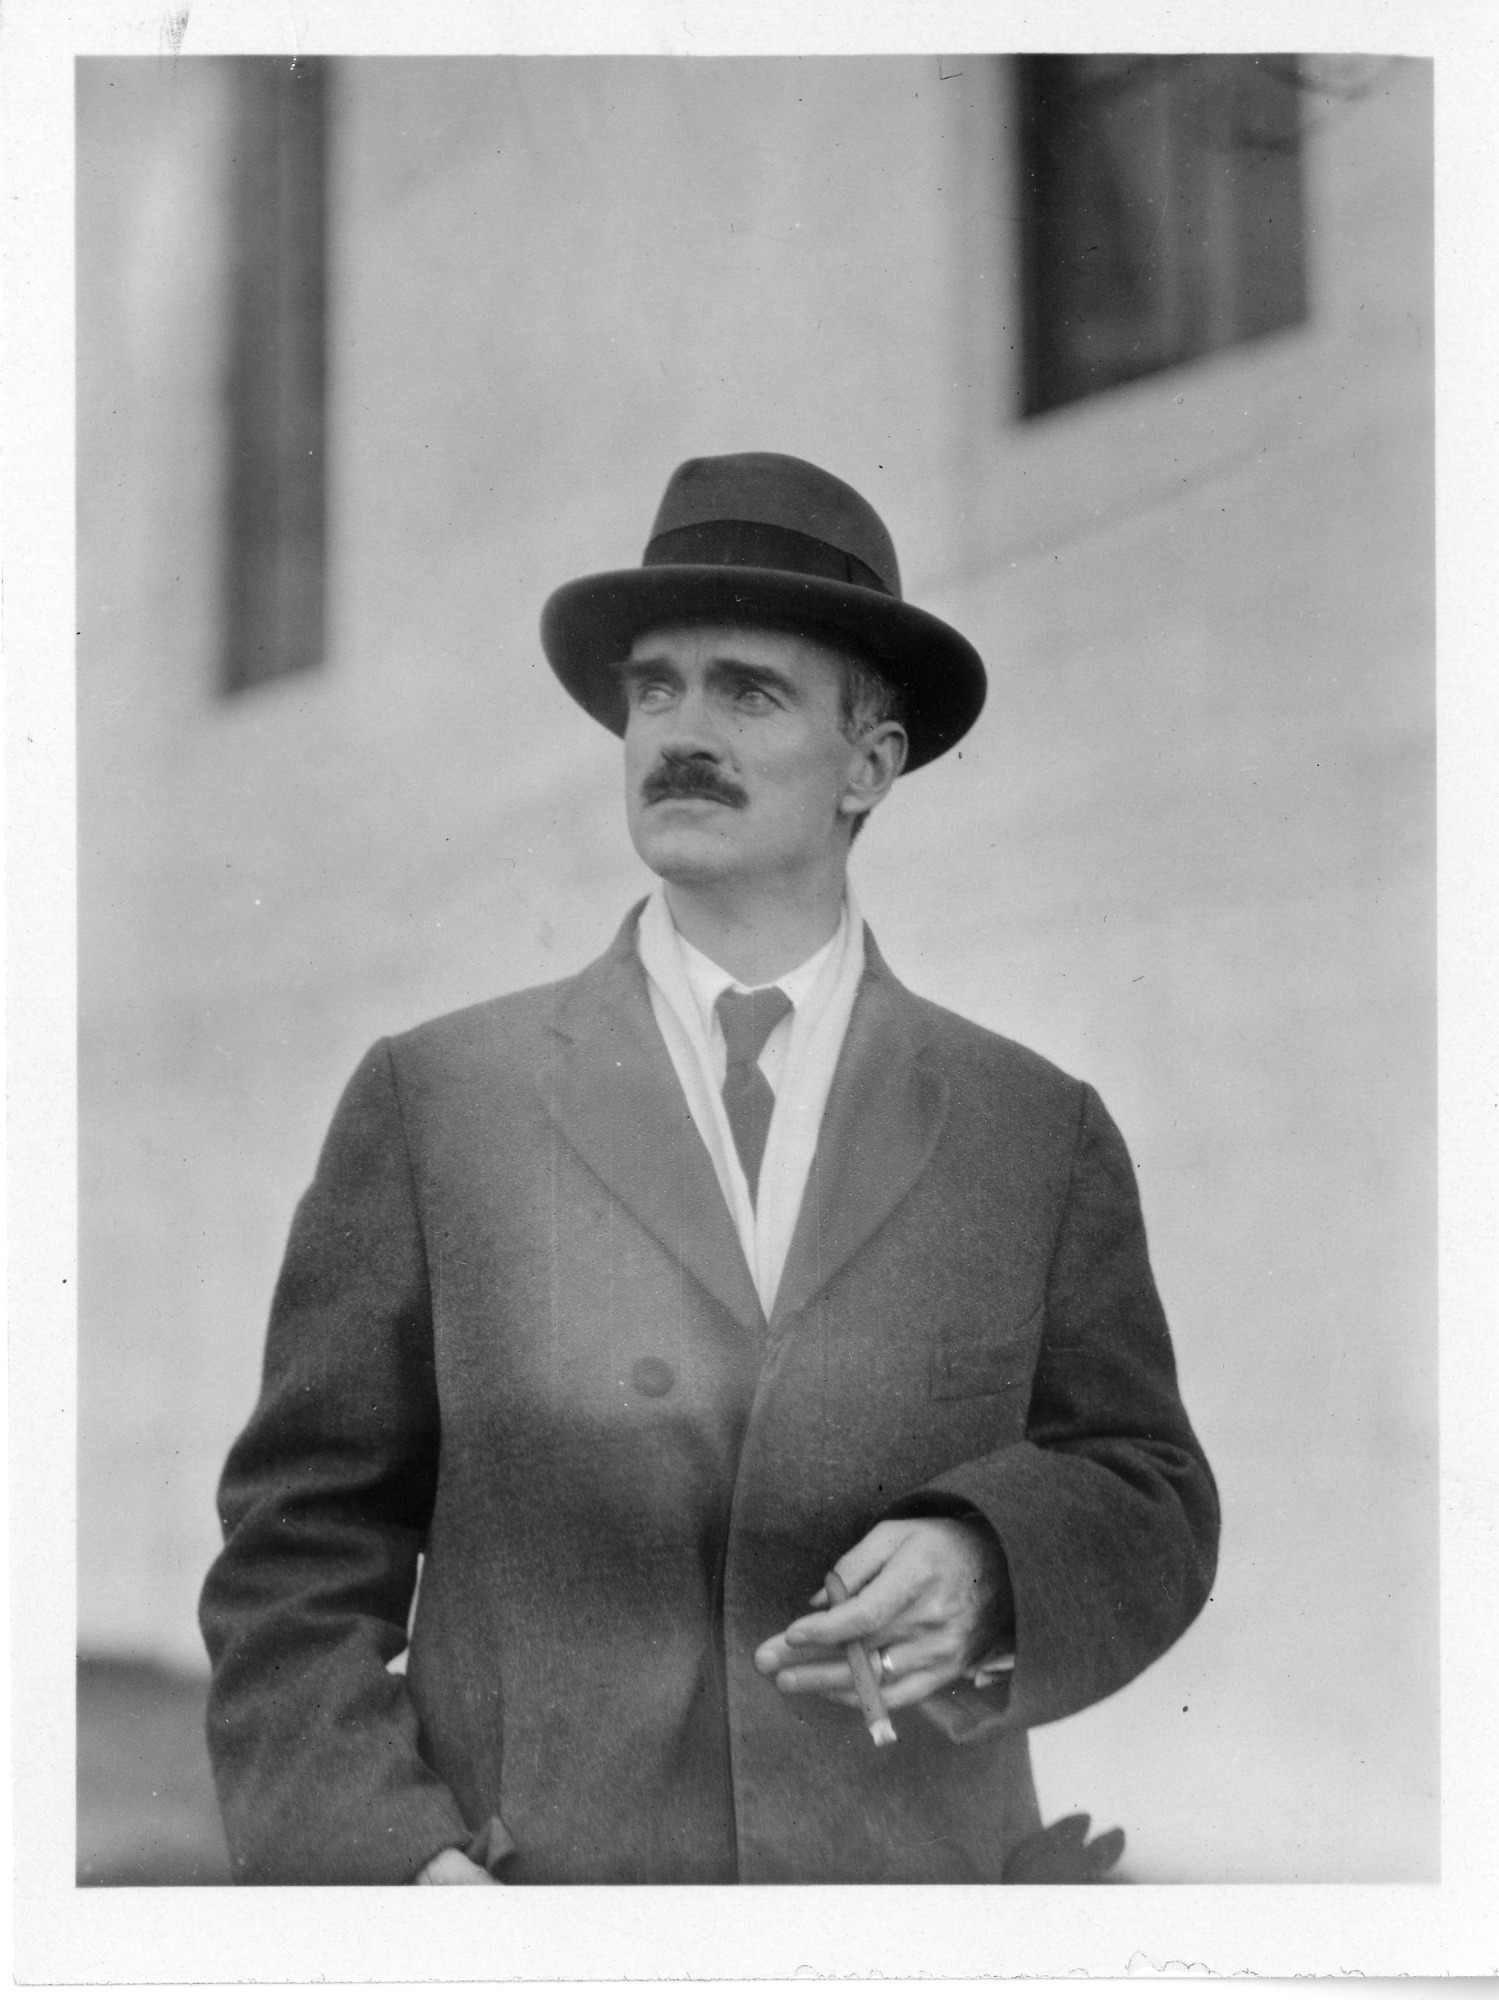 Charles Bittinger (1879-1970), Smithsonian Institution Archives, SIA Acc. 90-105 [SIA2007-0244].